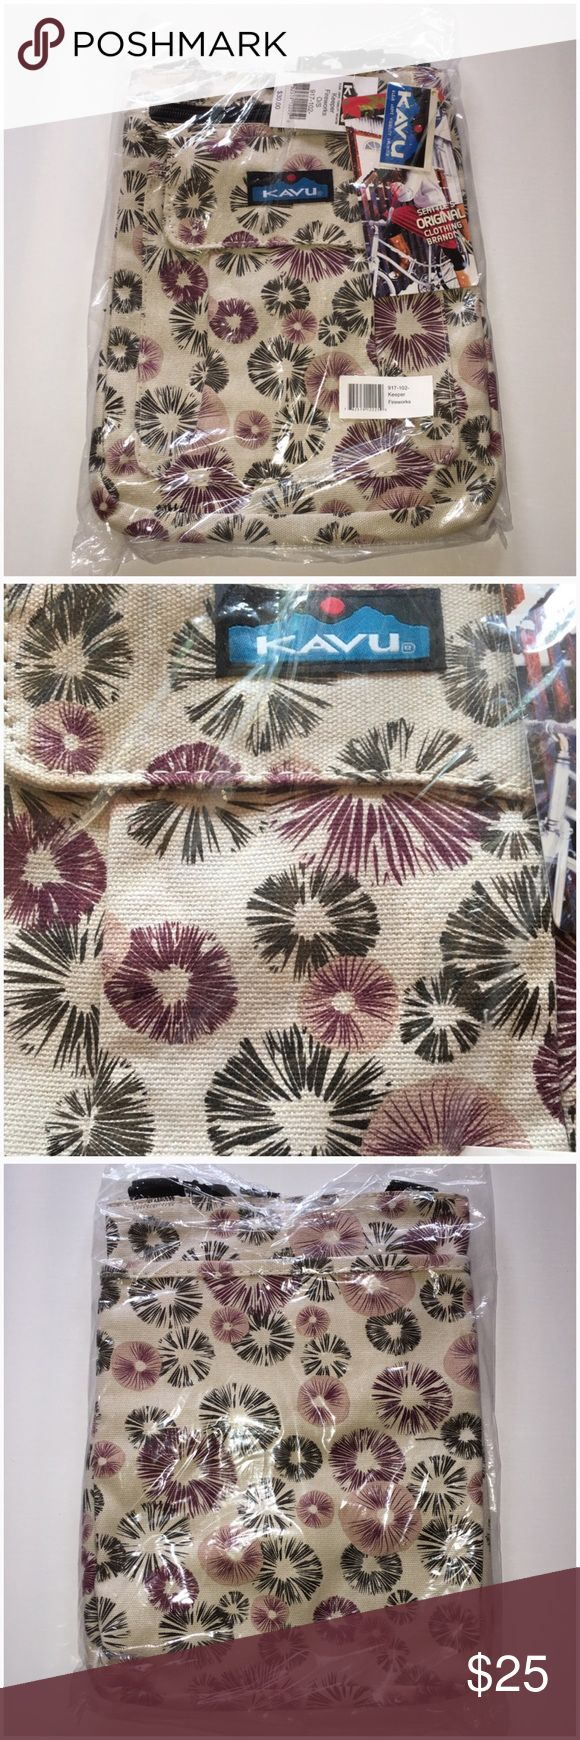 NWT Kavu cross body purse Brand new. Pattern is fireworks 💥 Price Firm. Paid full for it. kavu Bags Crossbody Bags